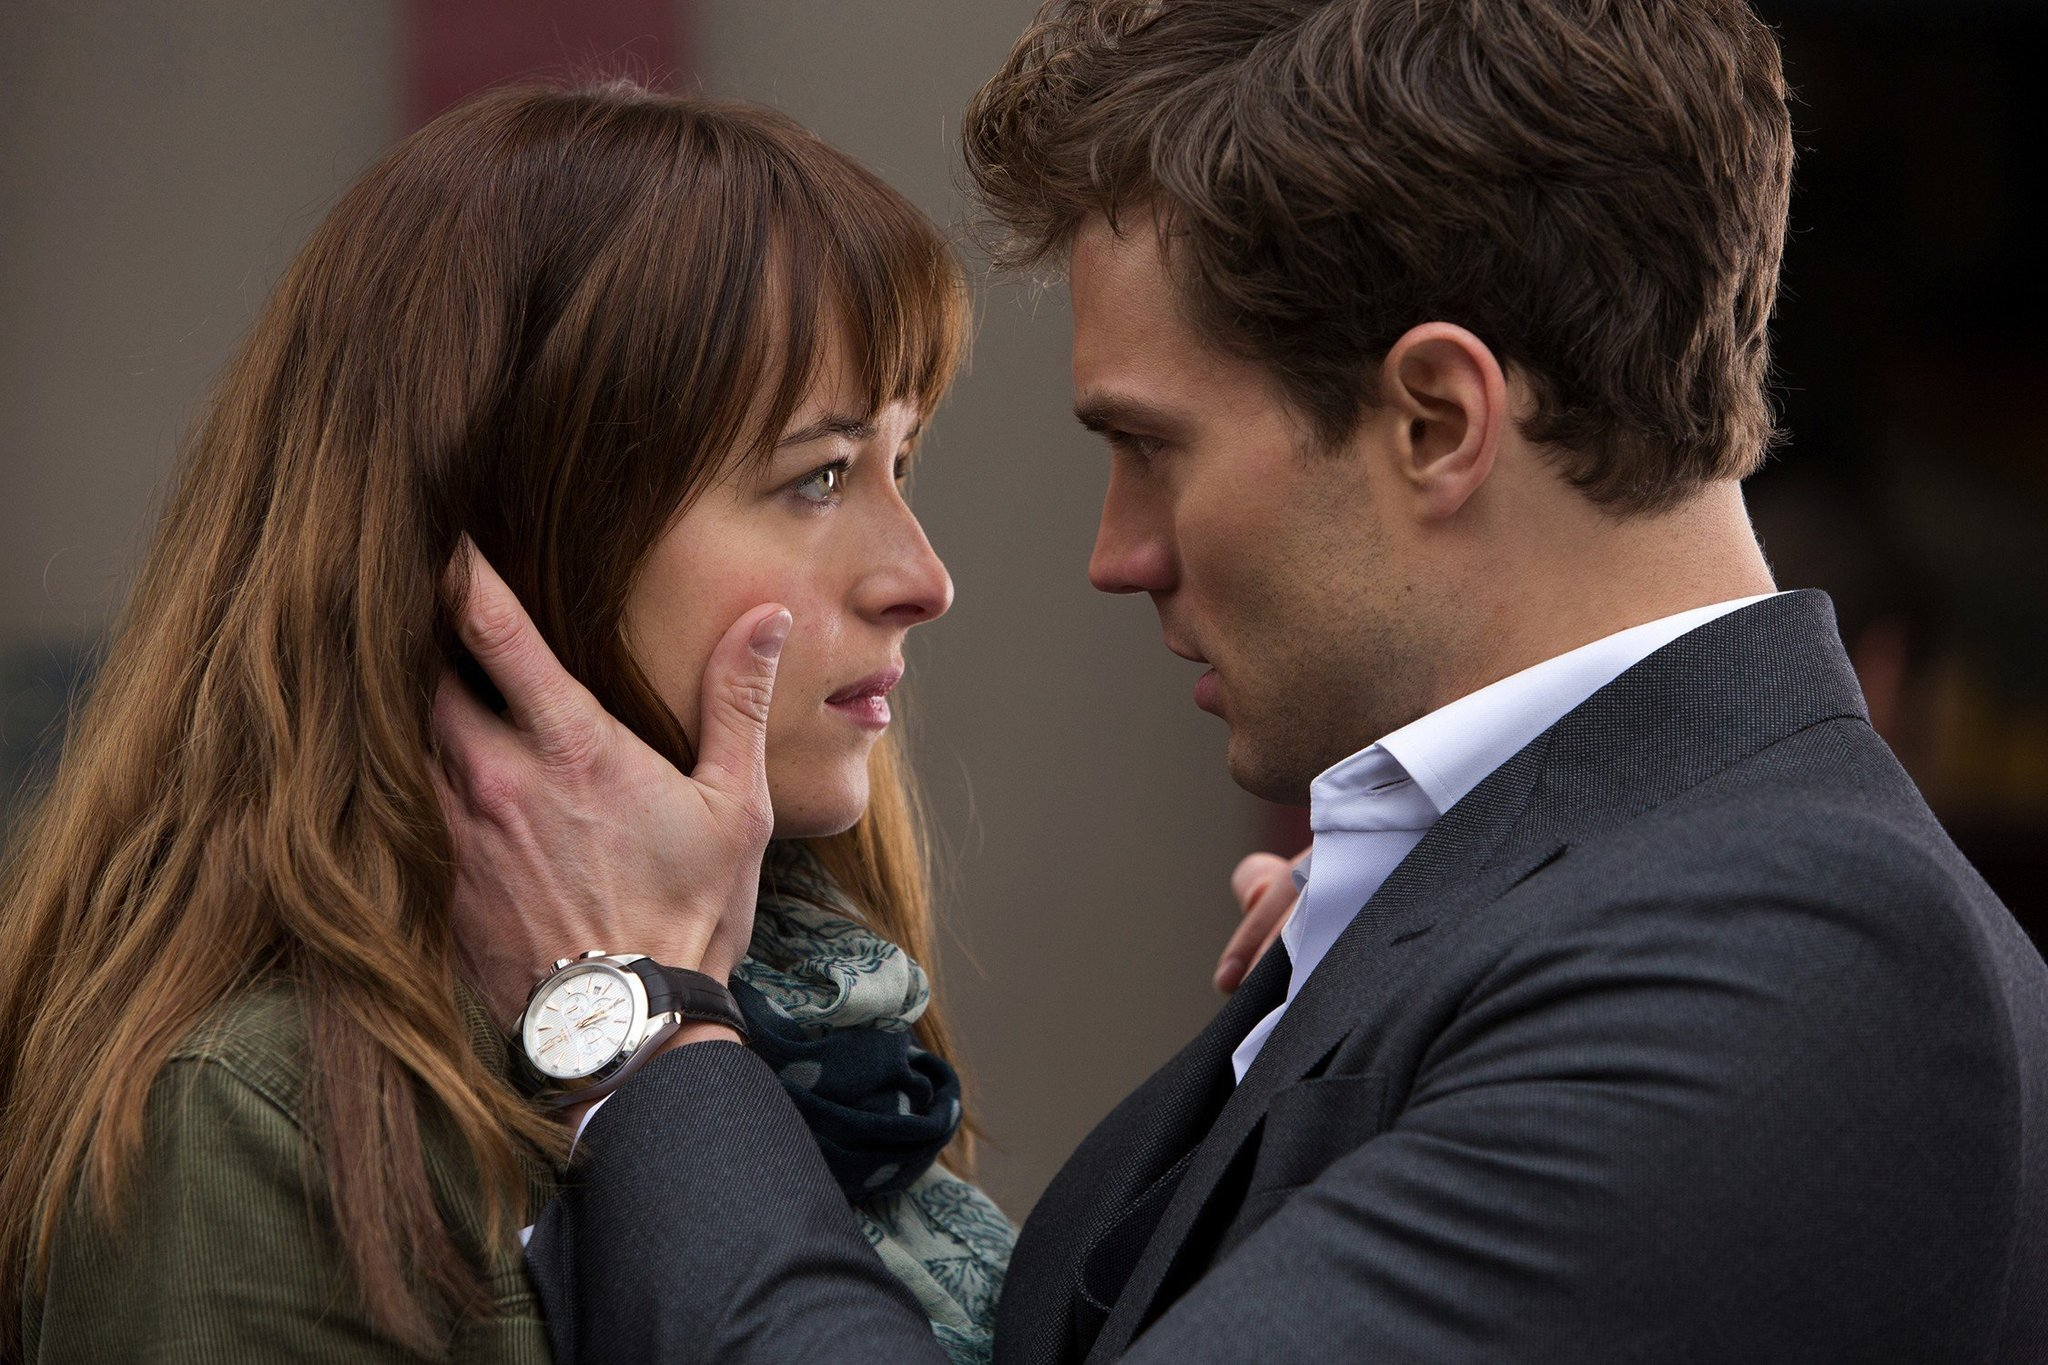 39 fifty shades of grey 39 leading ticket sales on fandango for Fifty shades od gray